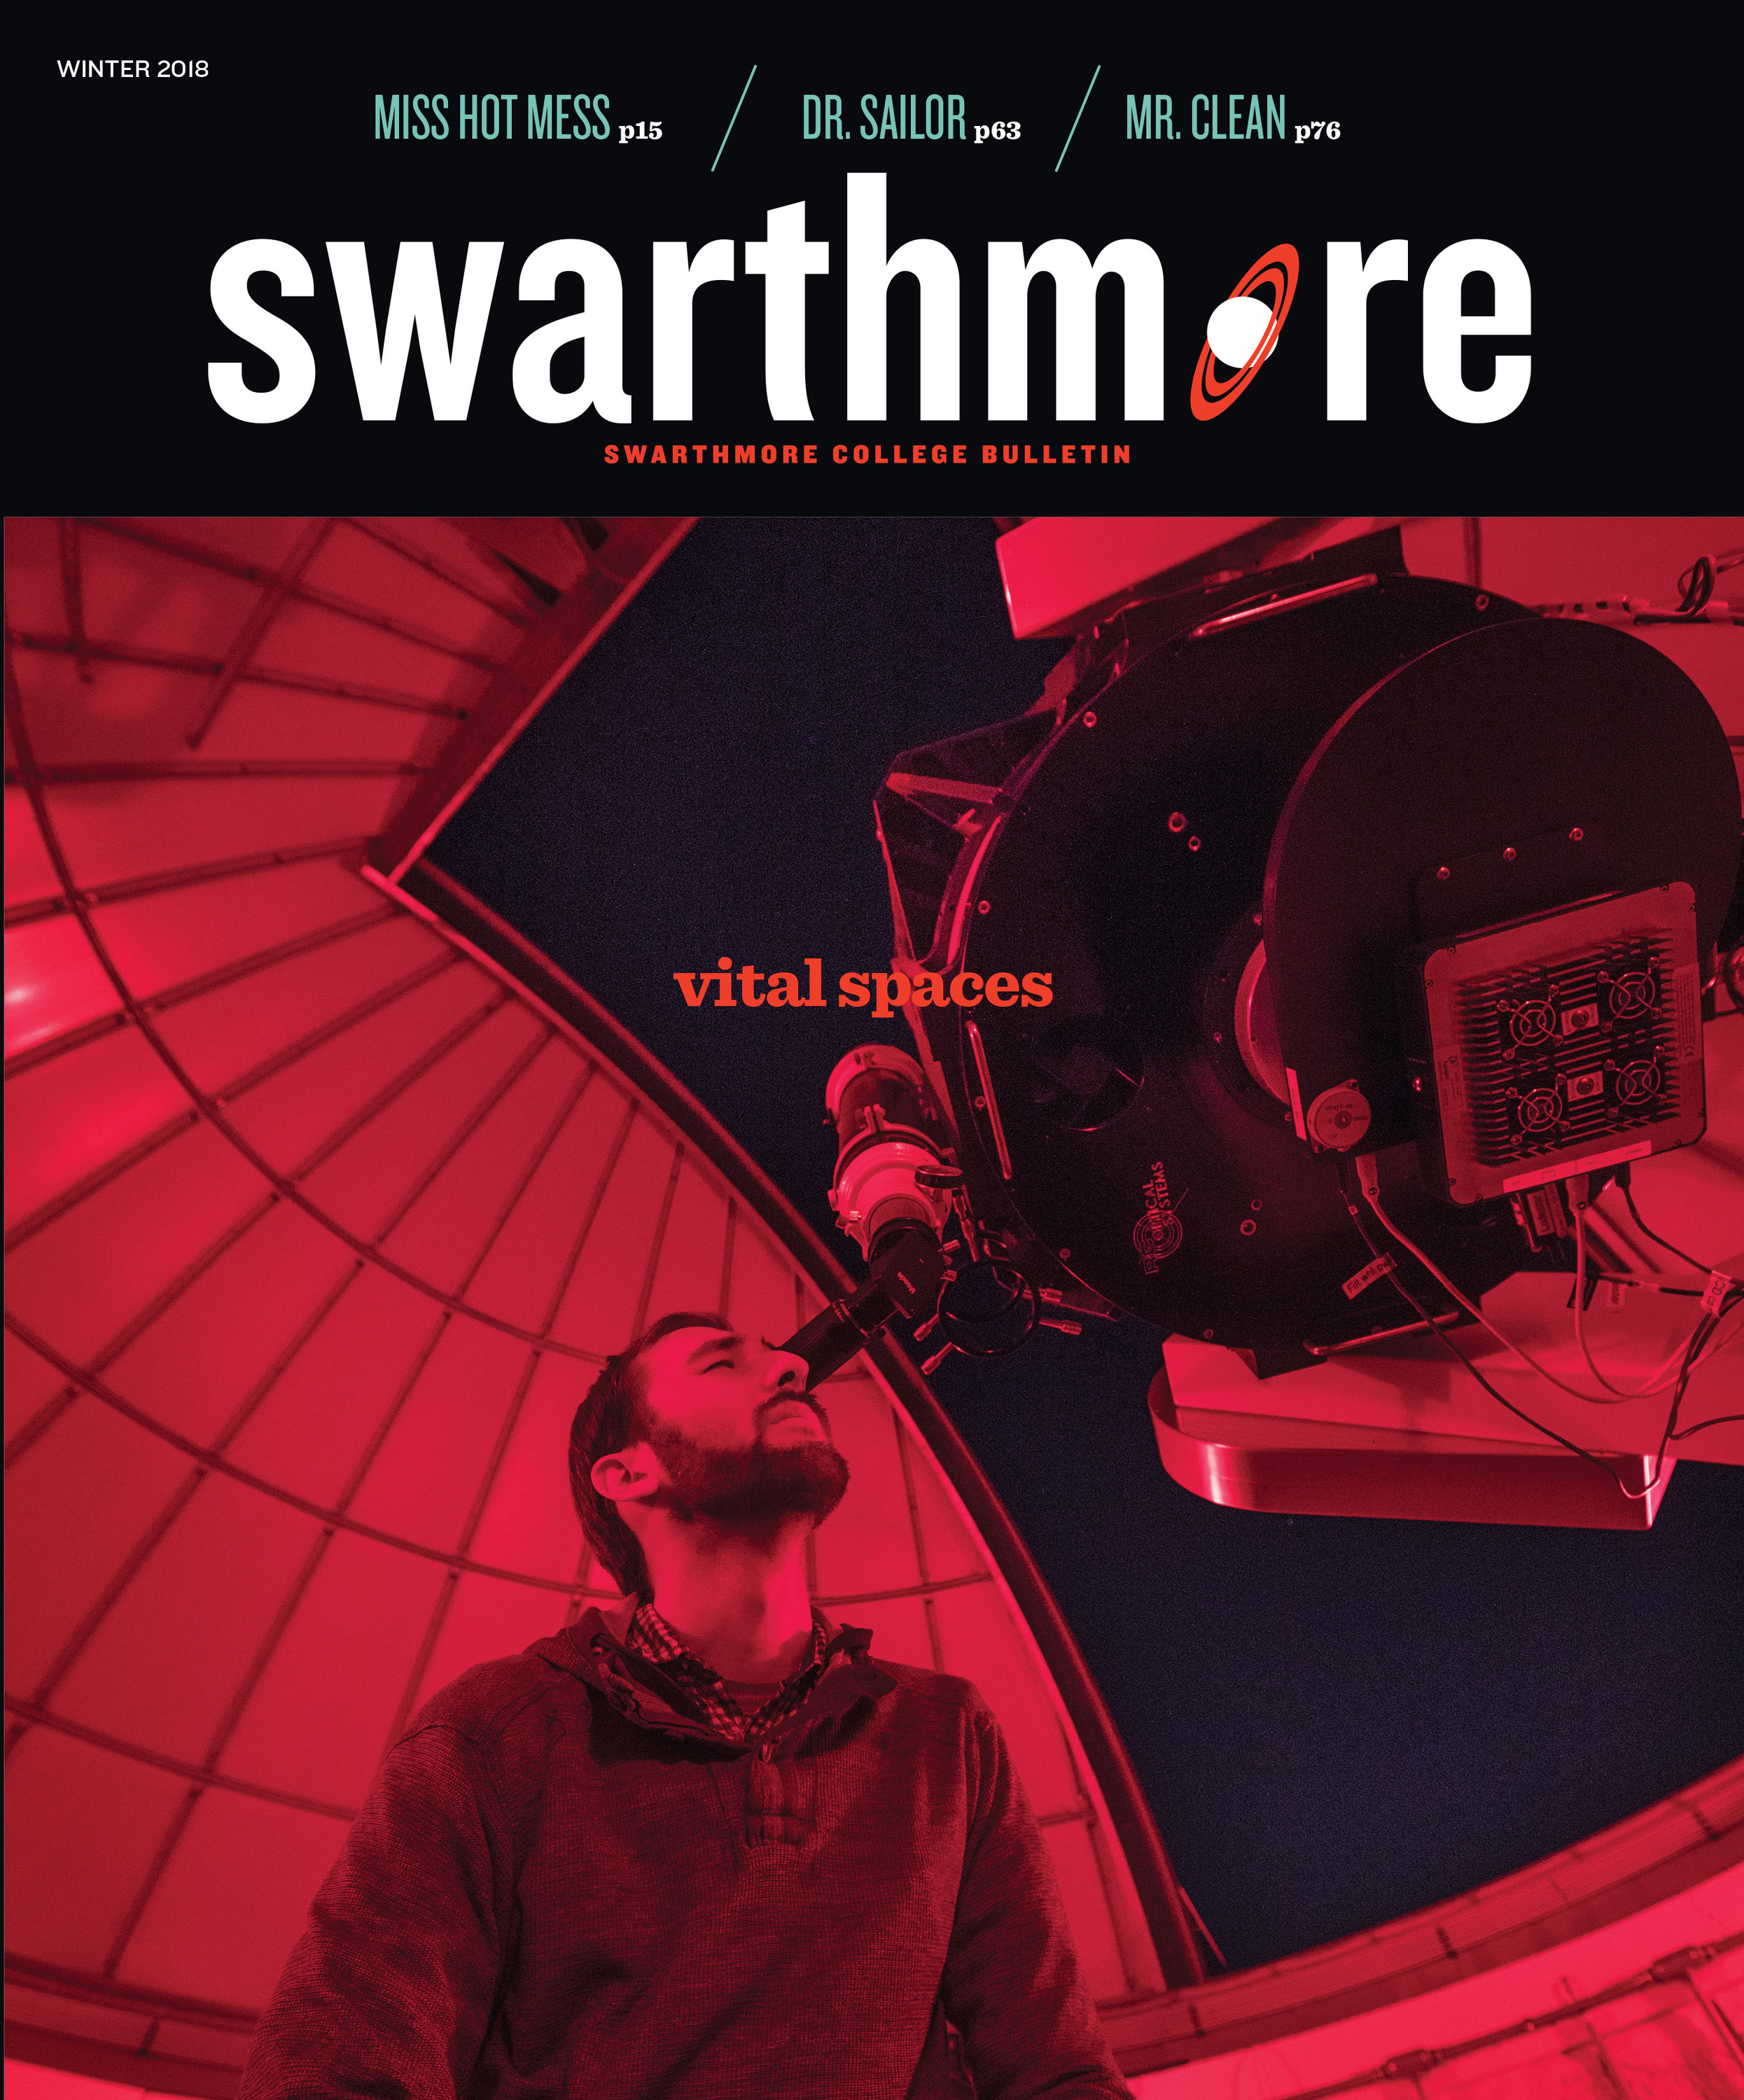 Winter 2018 cover of the bulletin, with a student looking through a telescope